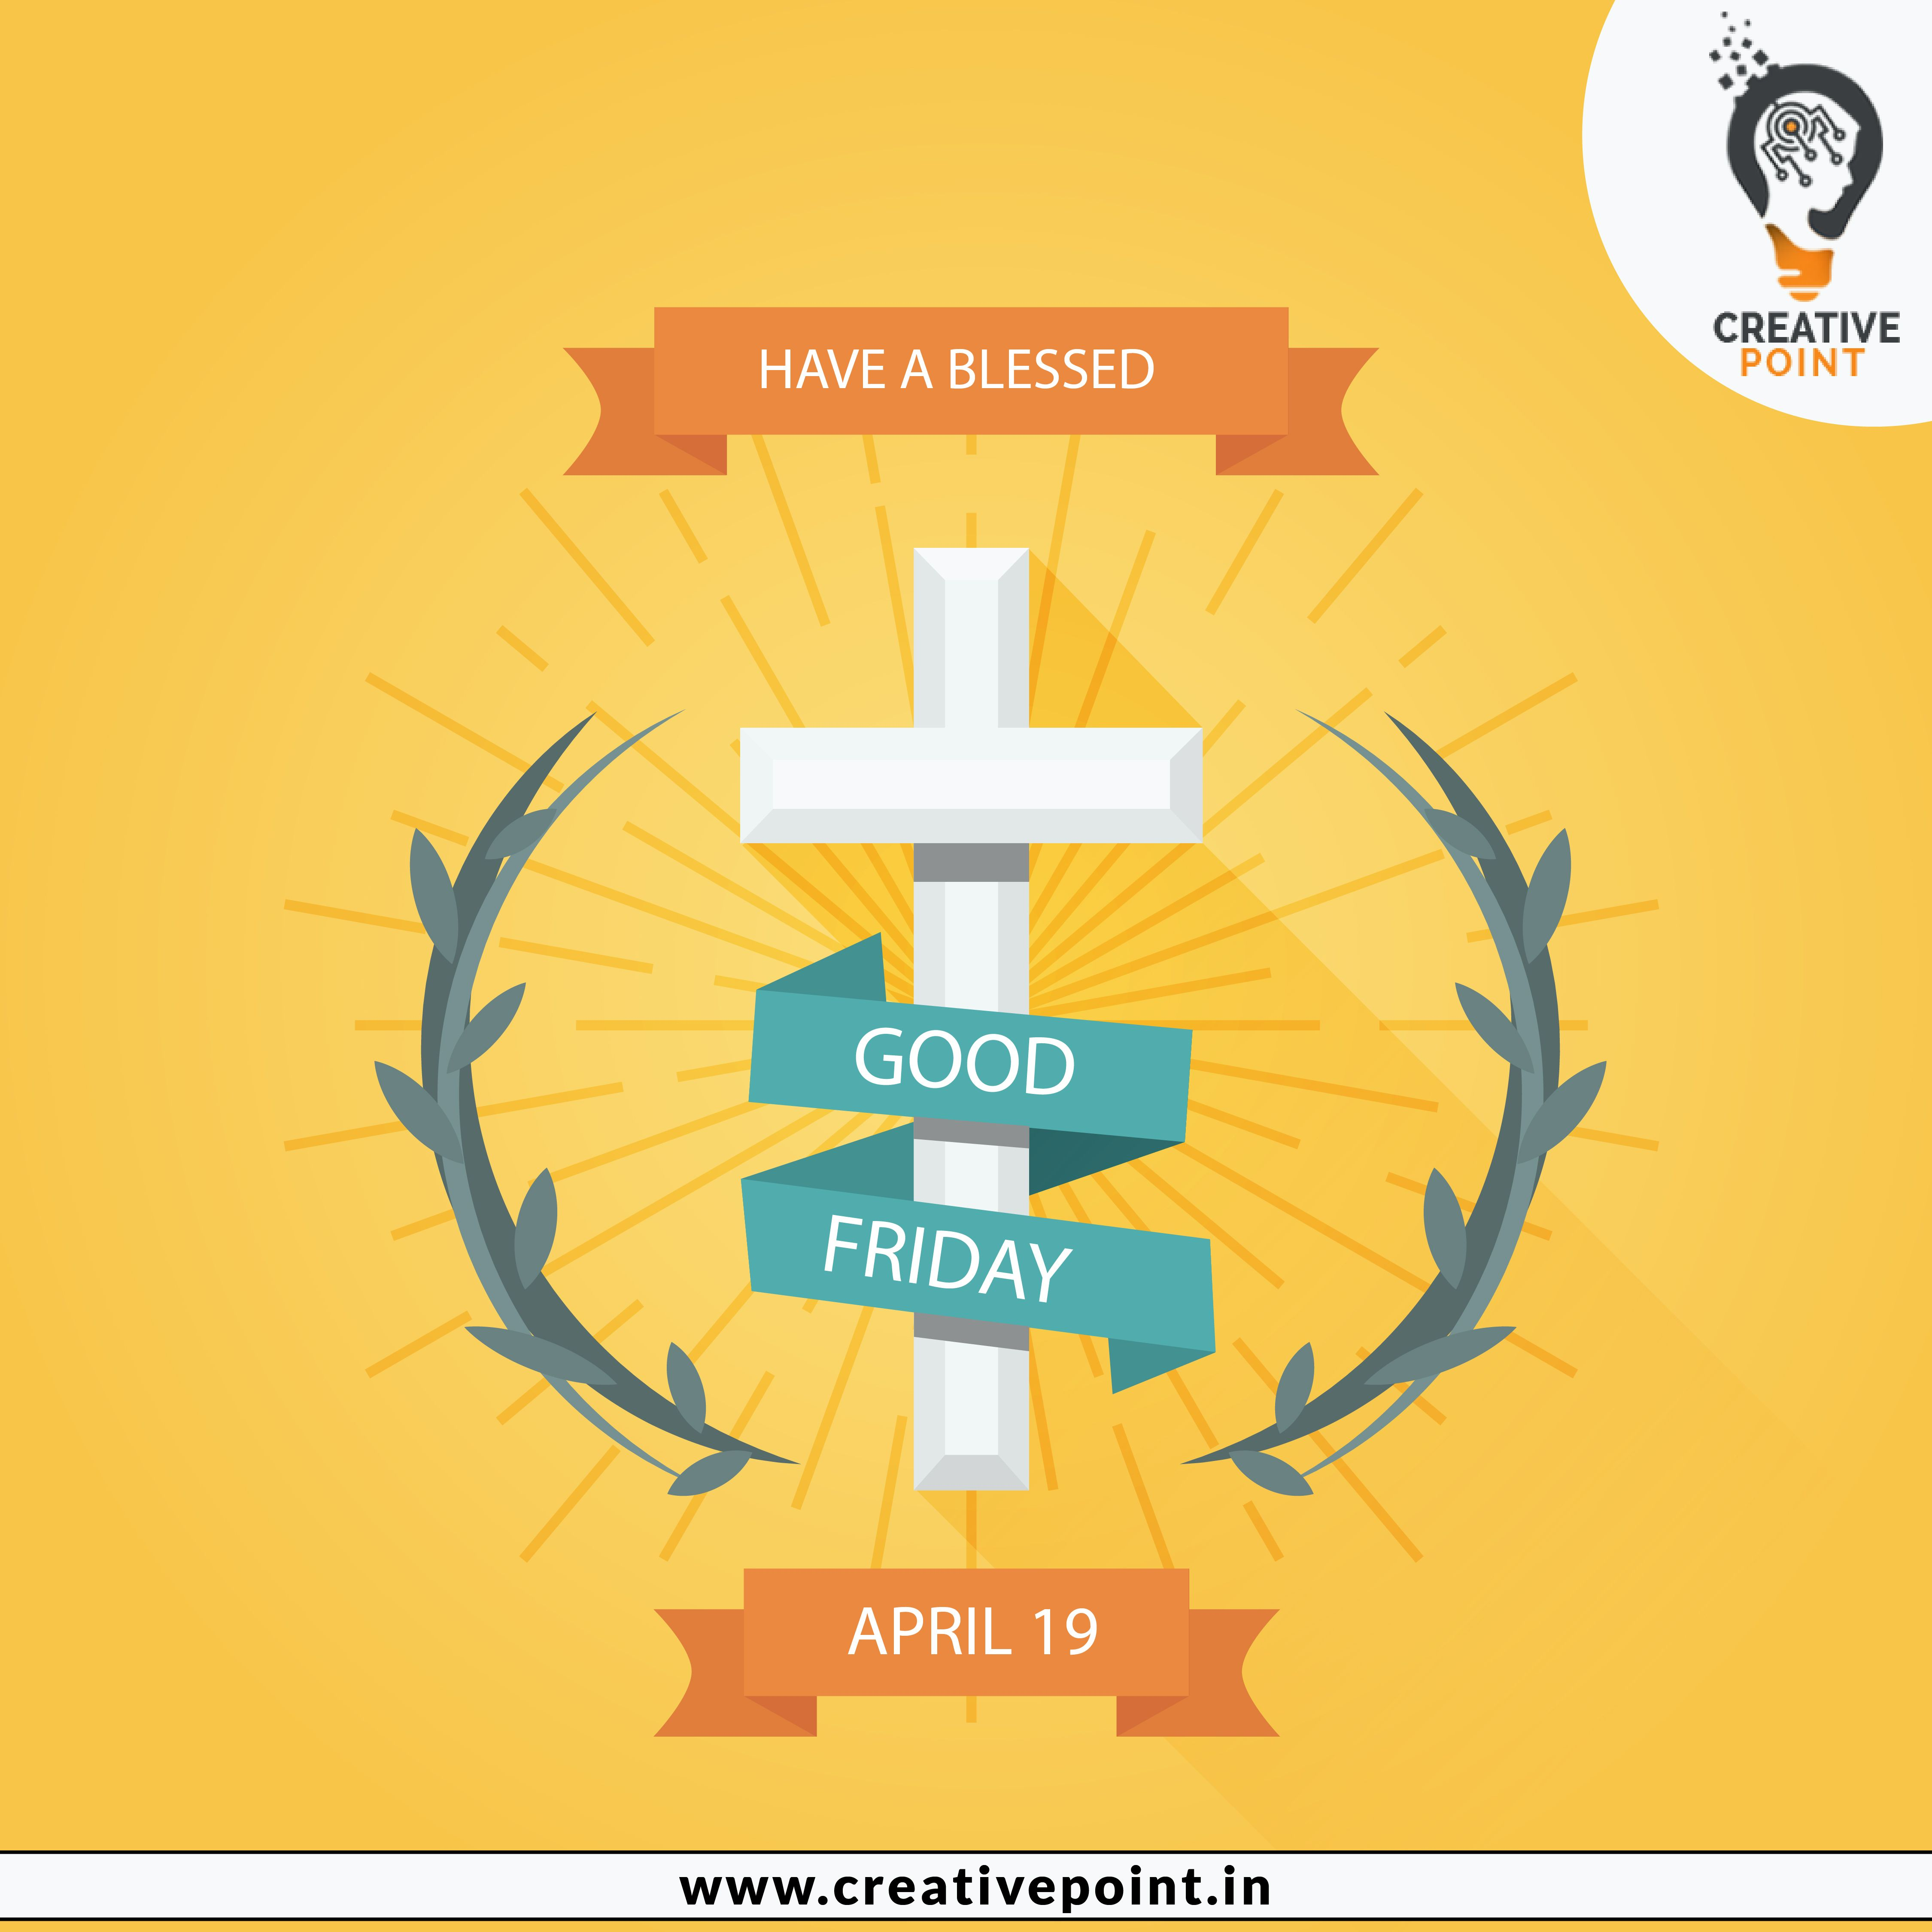 GoodFriday2019 Happy good friday wishes to all. Have a